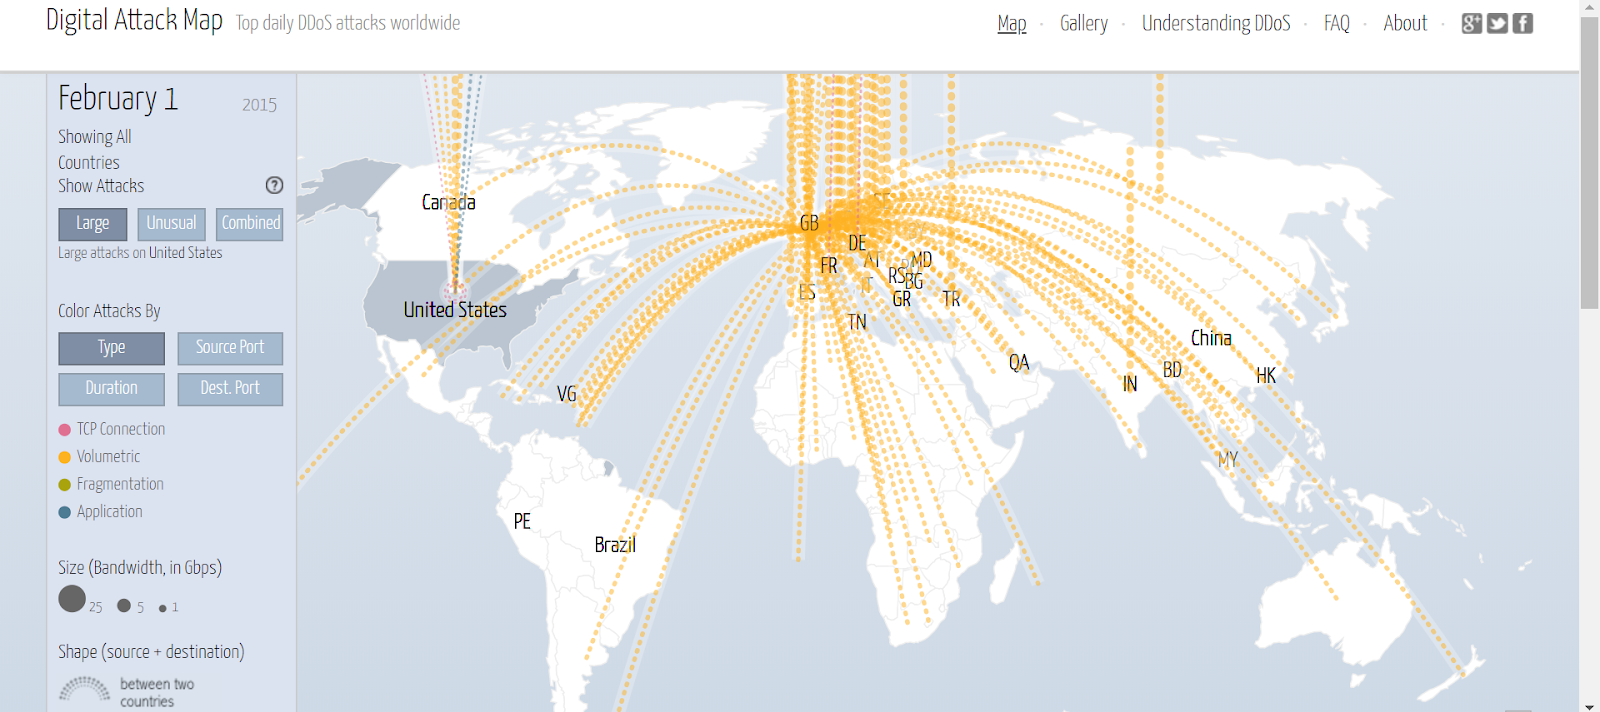 DDoS Attack Carried Out in Real-Time